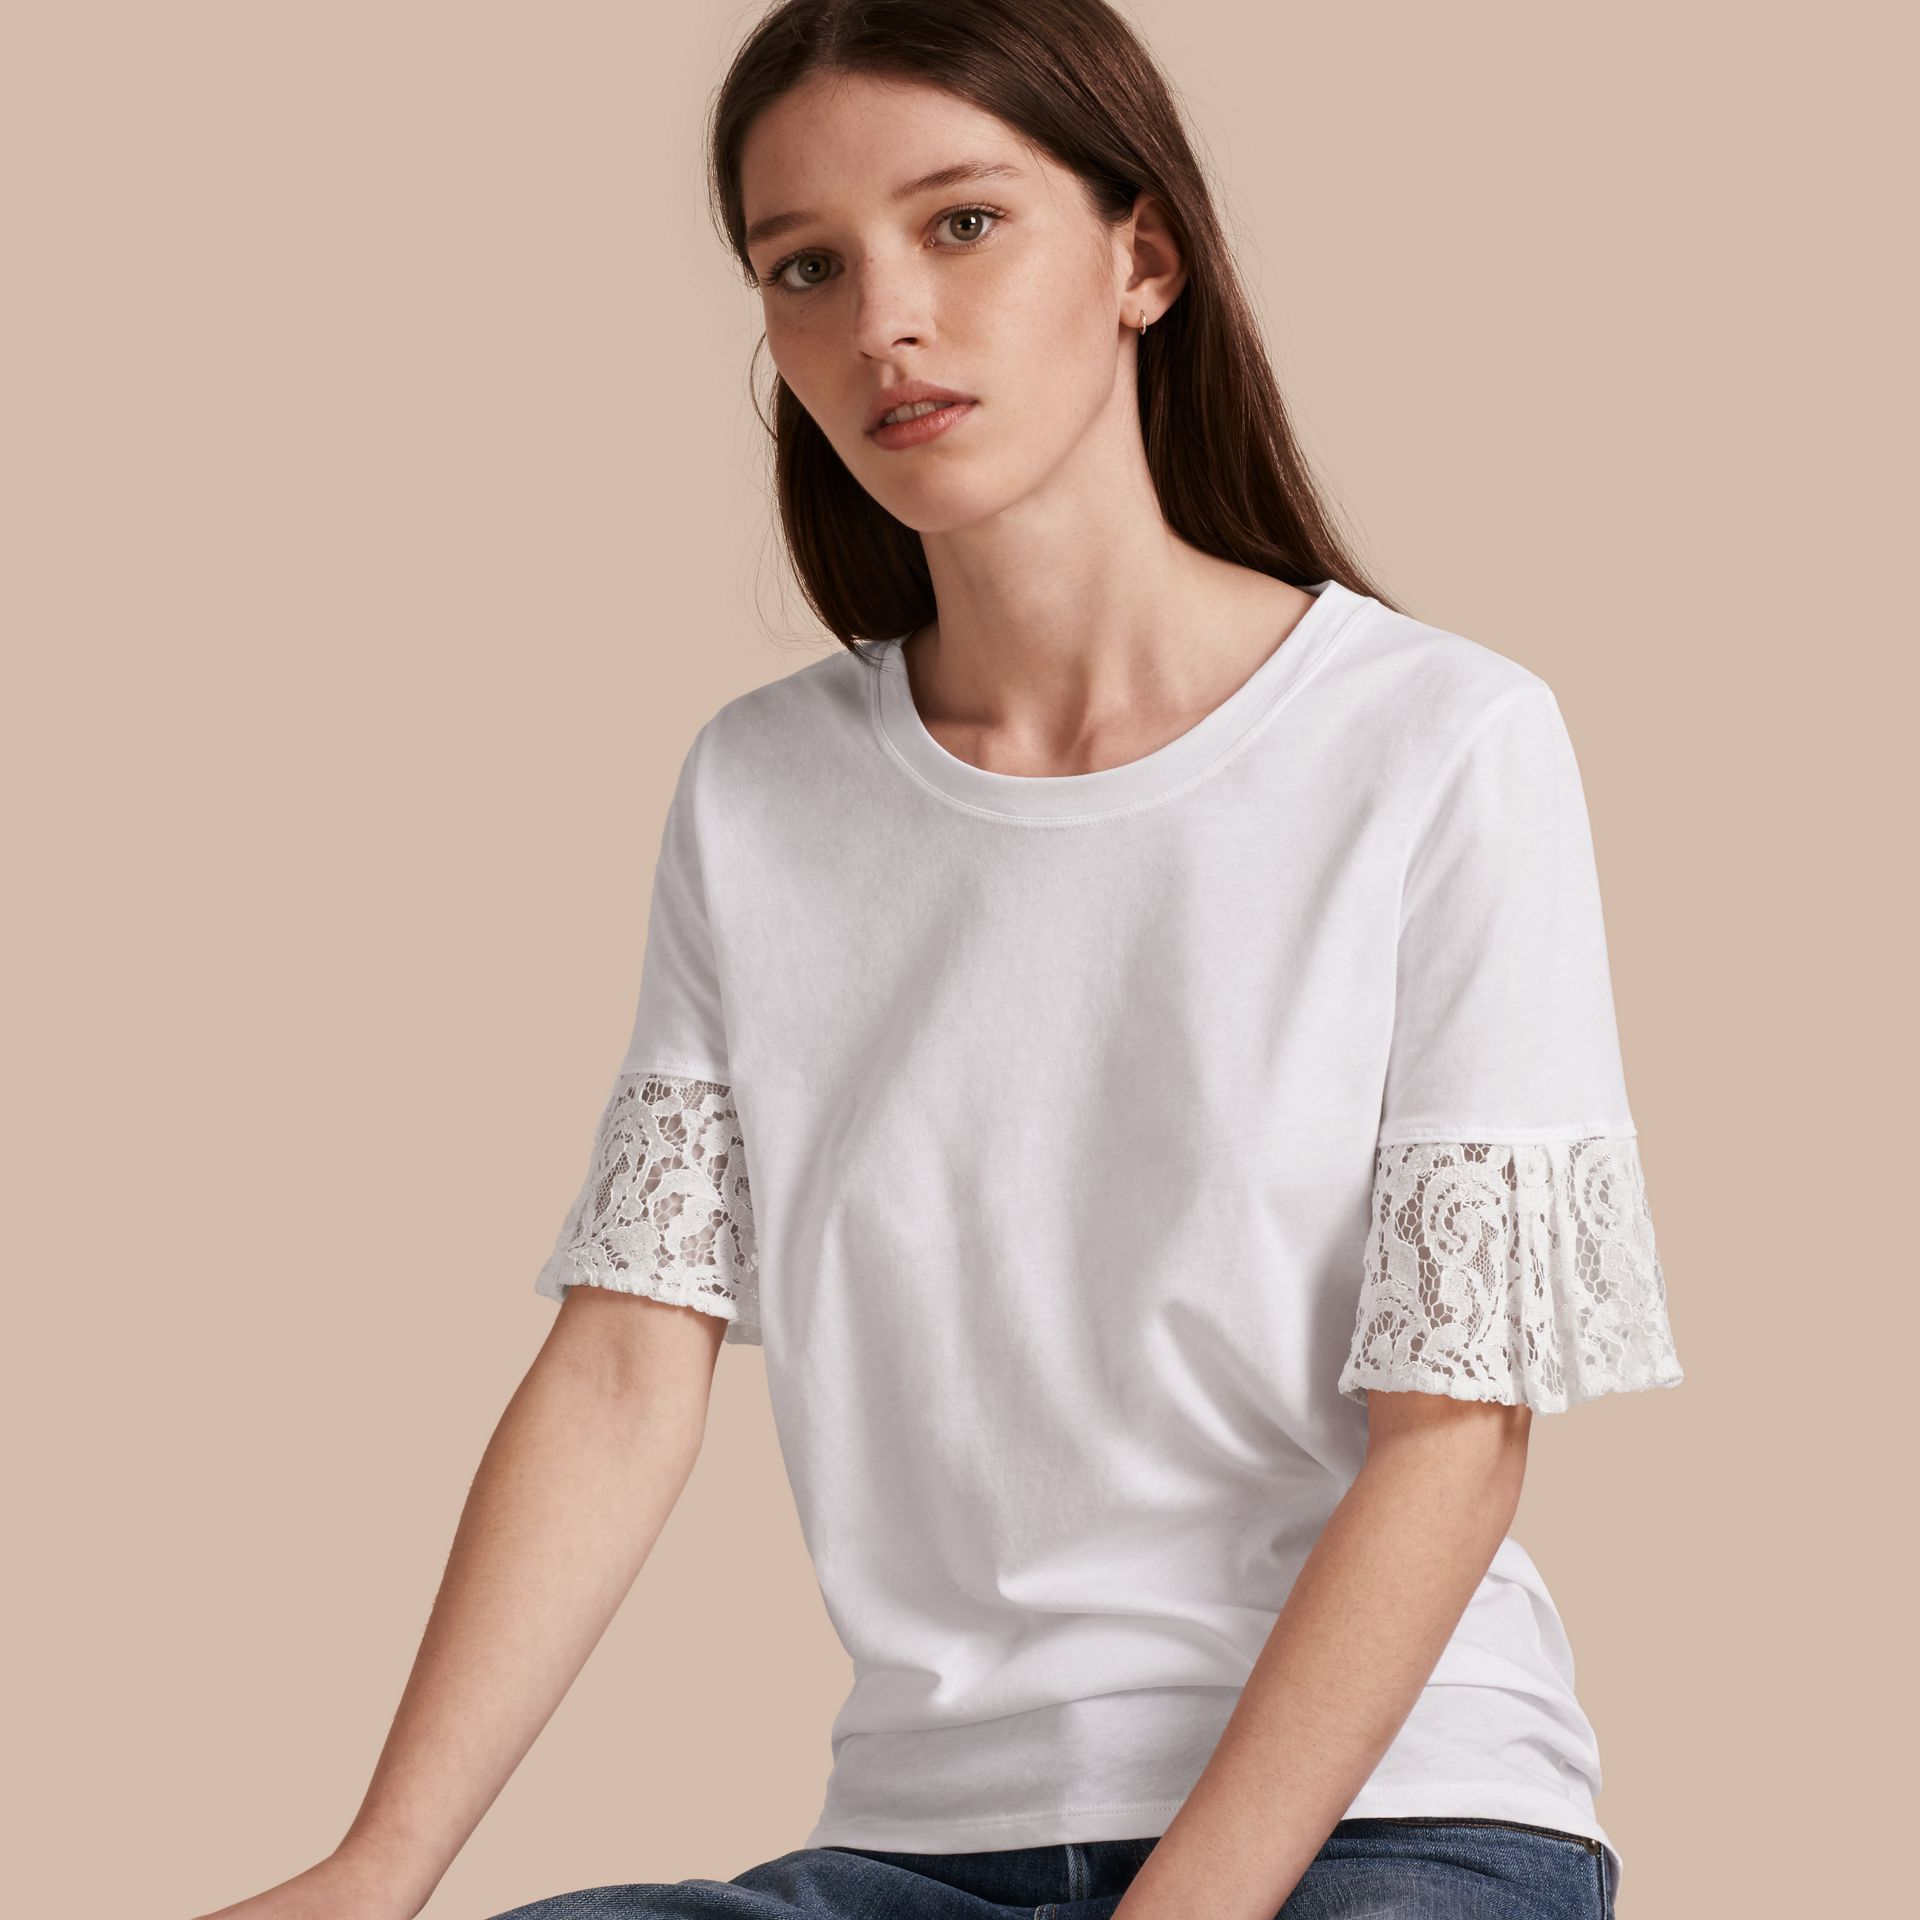 White Lace Trim Cotton T-shirt White - gallery image 1